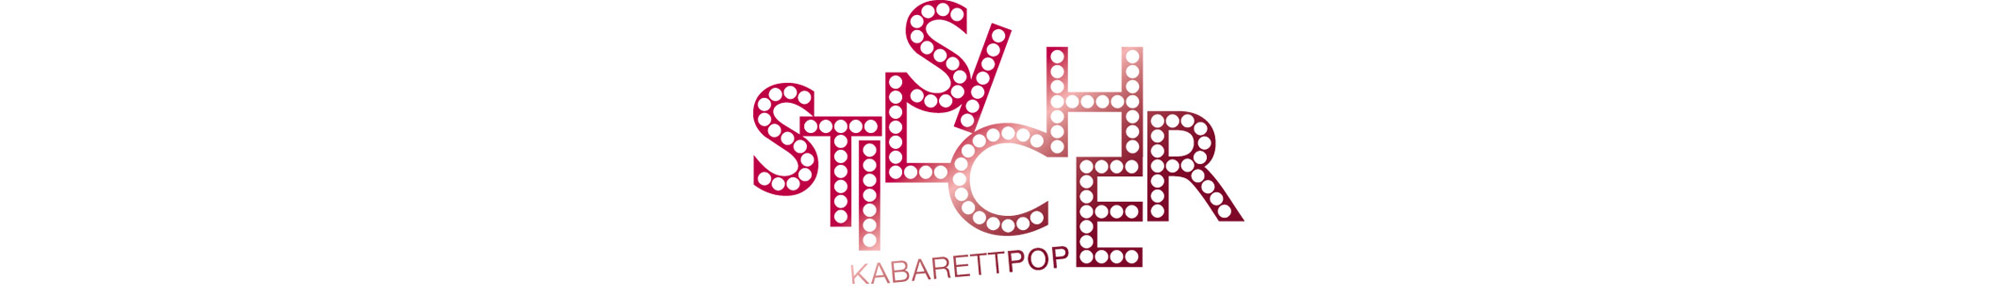 STILSICHER KABARETPOP